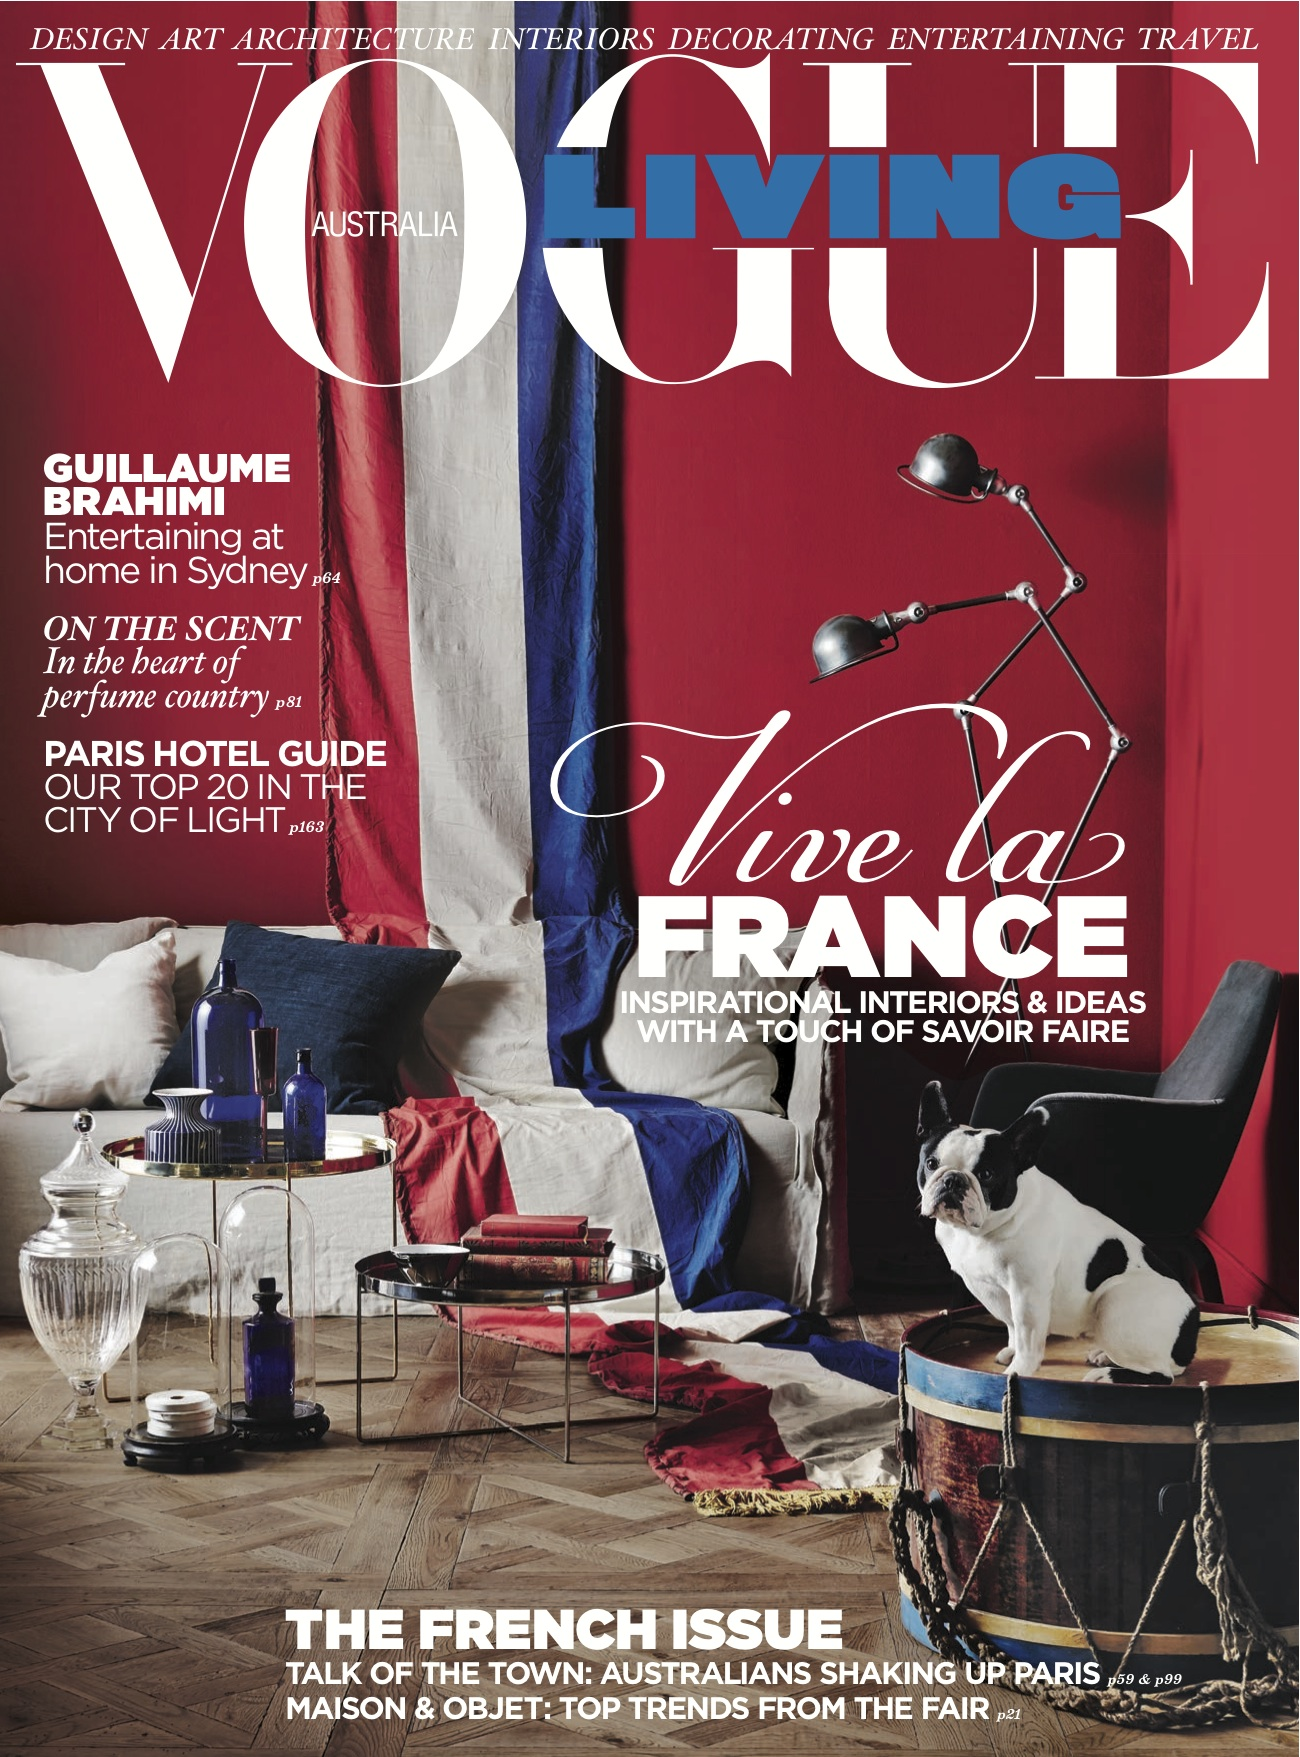 Vogue Living Magazine cover for June 2013